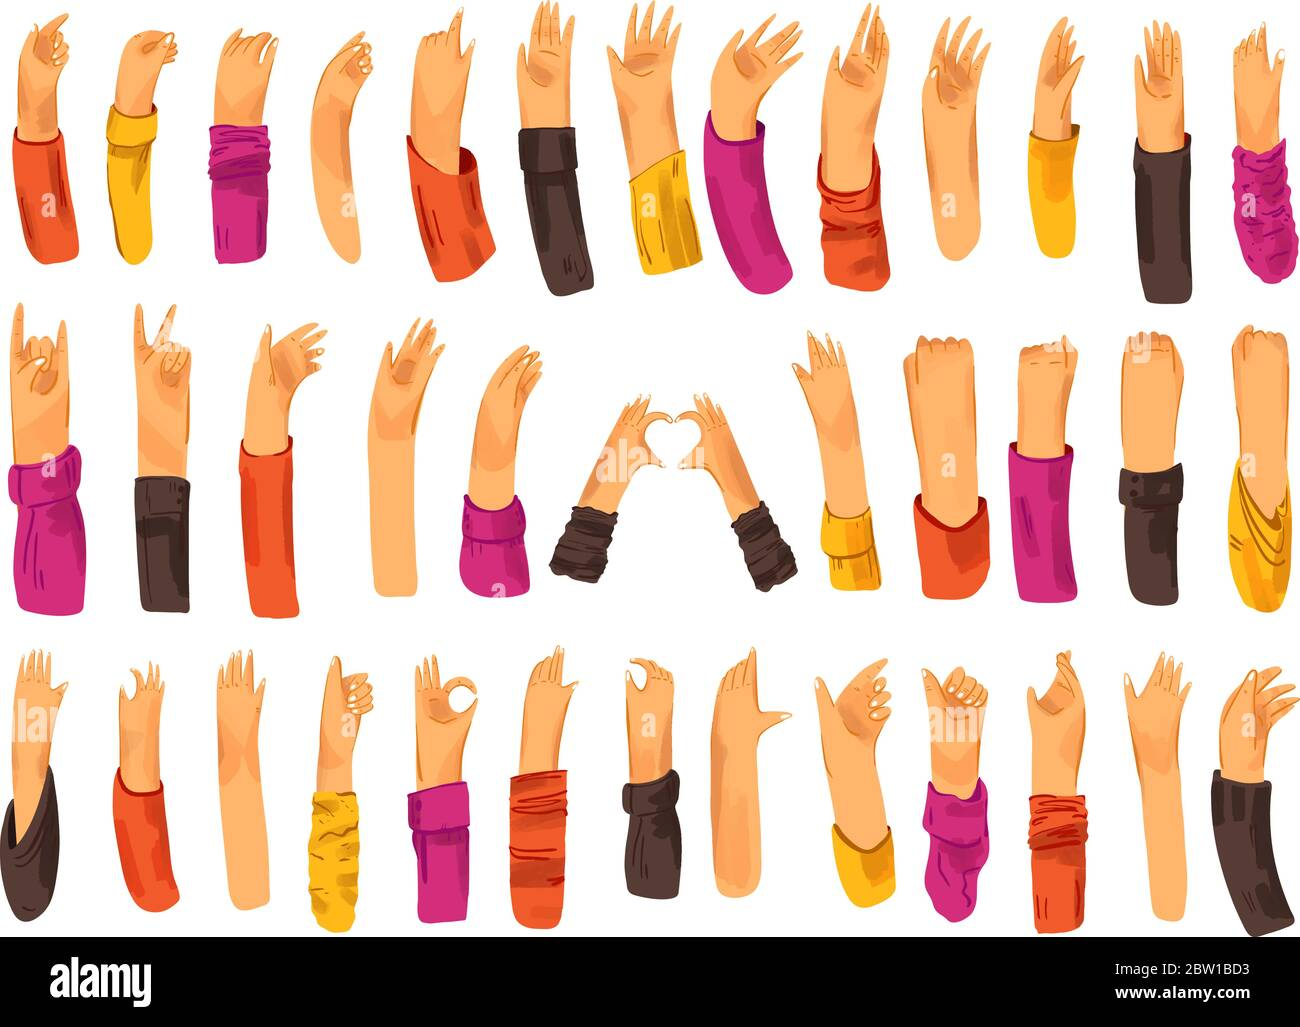 Human hand with collection of signs and hand gestures - ok, love, greetings, waving hands, phone and app control with fingers, fist up. Man and woman Stock Vector